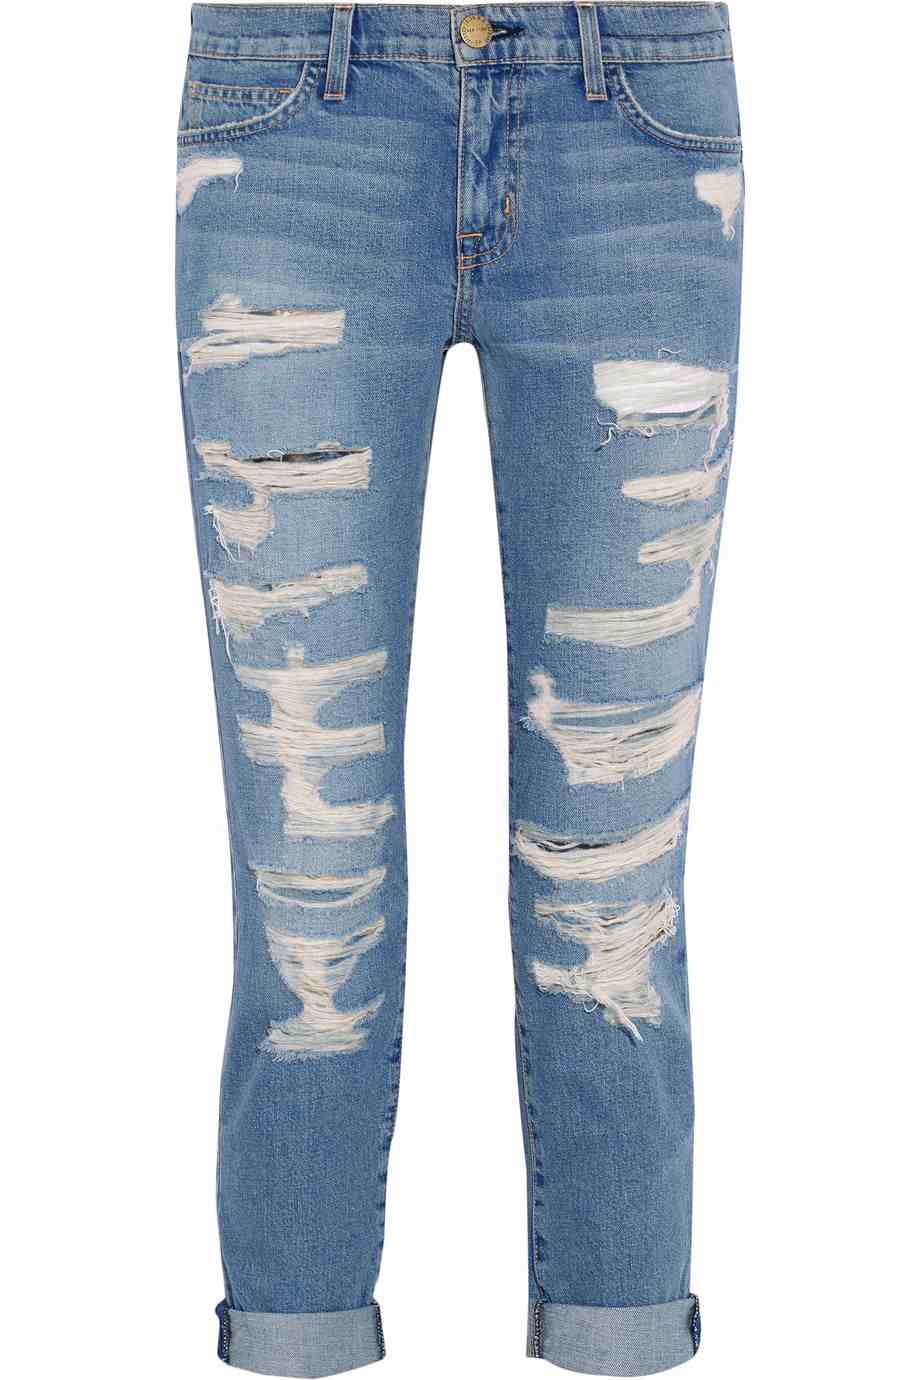 Current/Elliott - Jean (325 €)